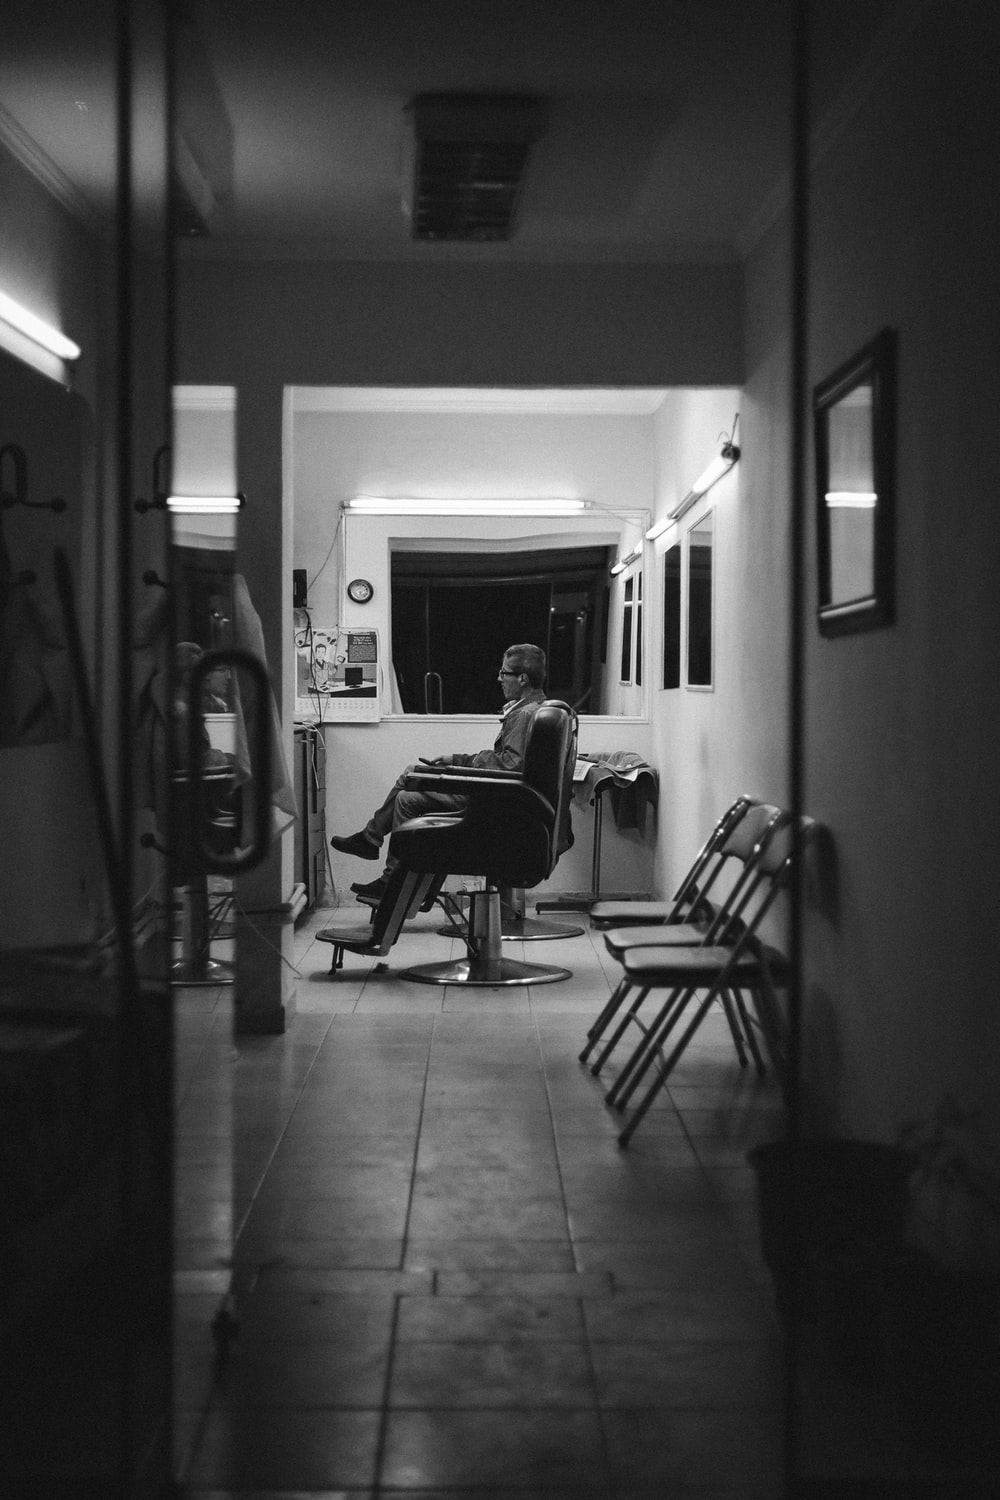 grayscale photo of man sitting on chair